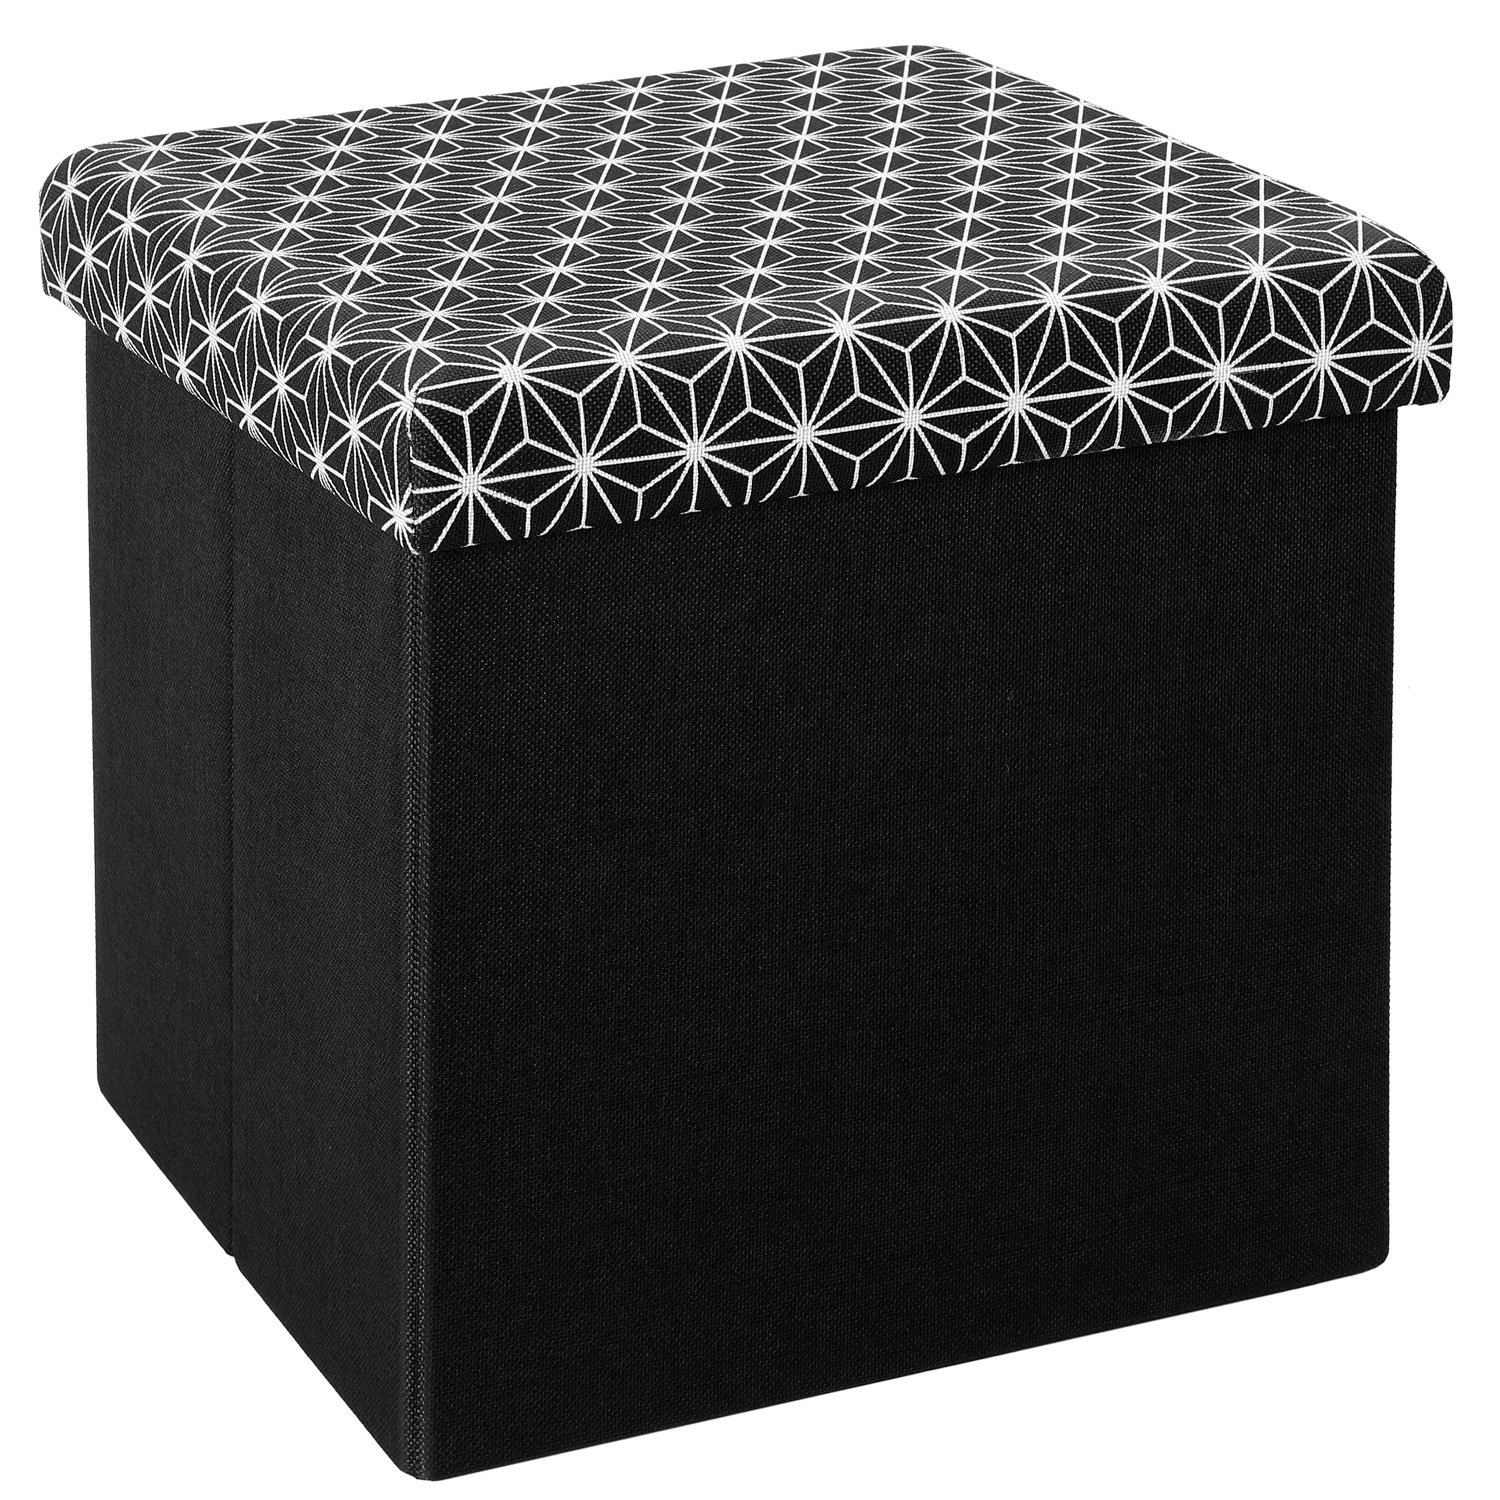 Ottoman Storage Boxes, Linen Fabric Folding Storage Ottoman Box Seat Foot Stool with Cushion